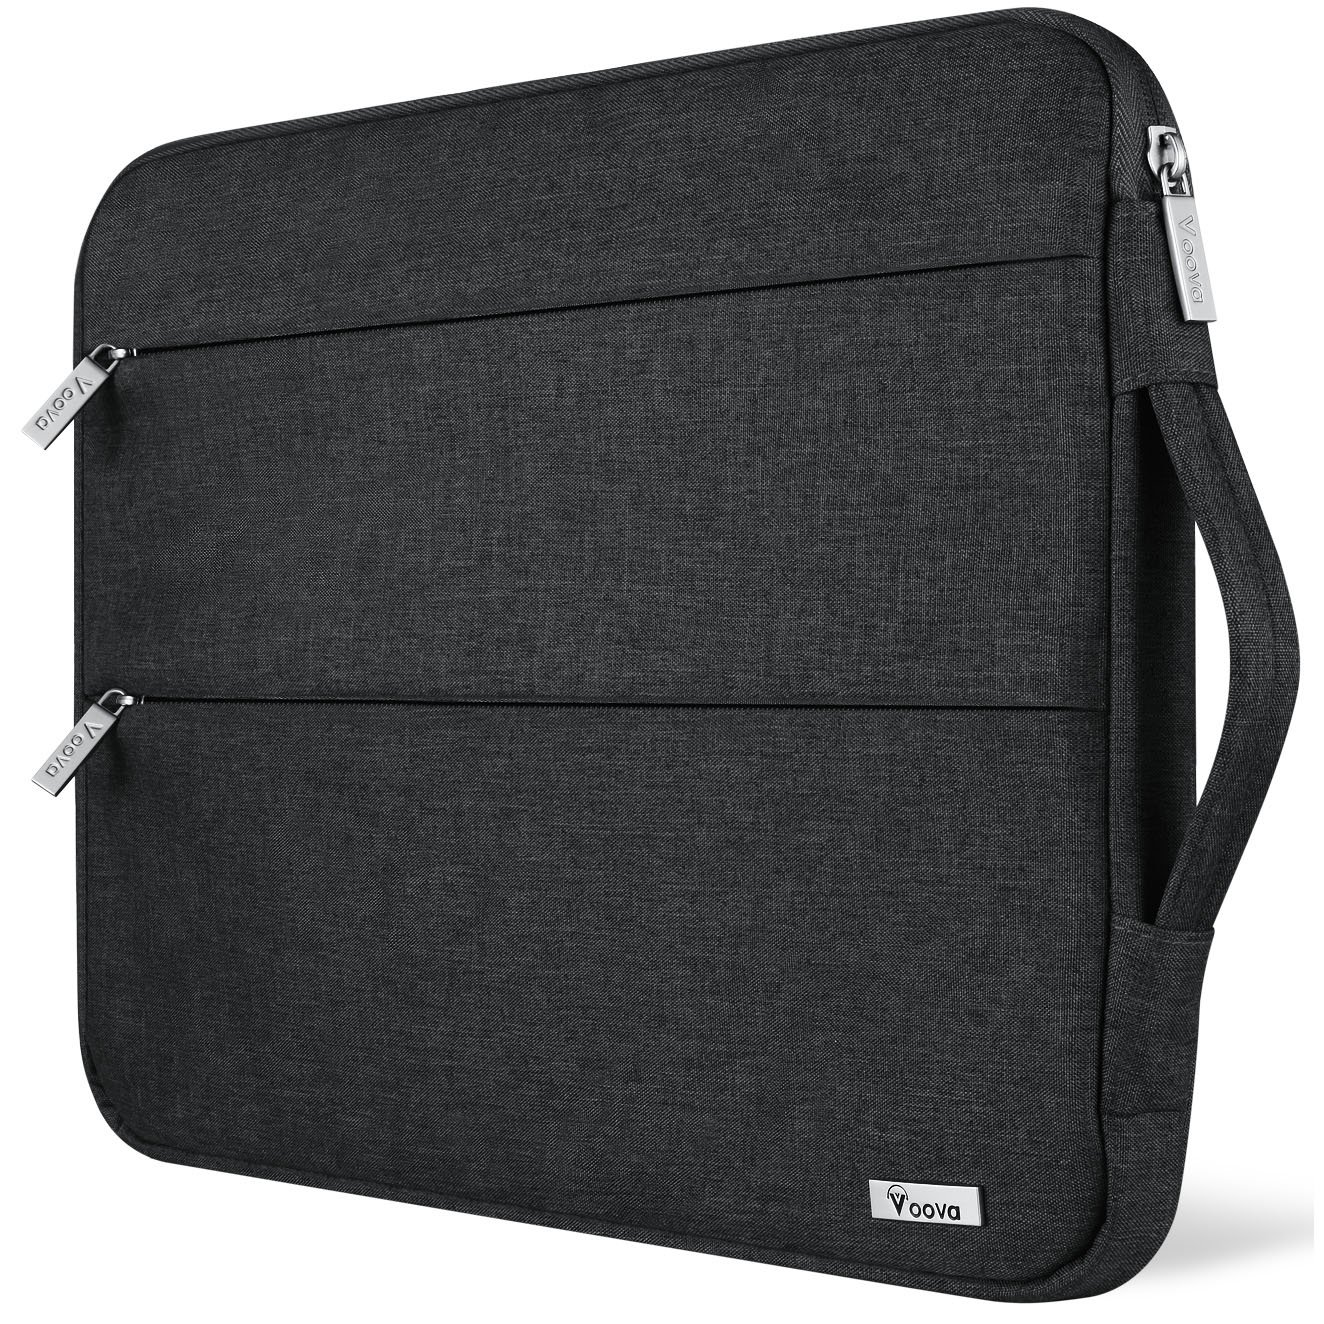 Voova 15.6 14 15 Inch Laptop Sleeve Case with Handle Waterproof Protective Cover Bag Compatible with MacBook Pro 15.4'', Surface Book 2 15'', ASUS, Acer, Hp with Pocket, Black